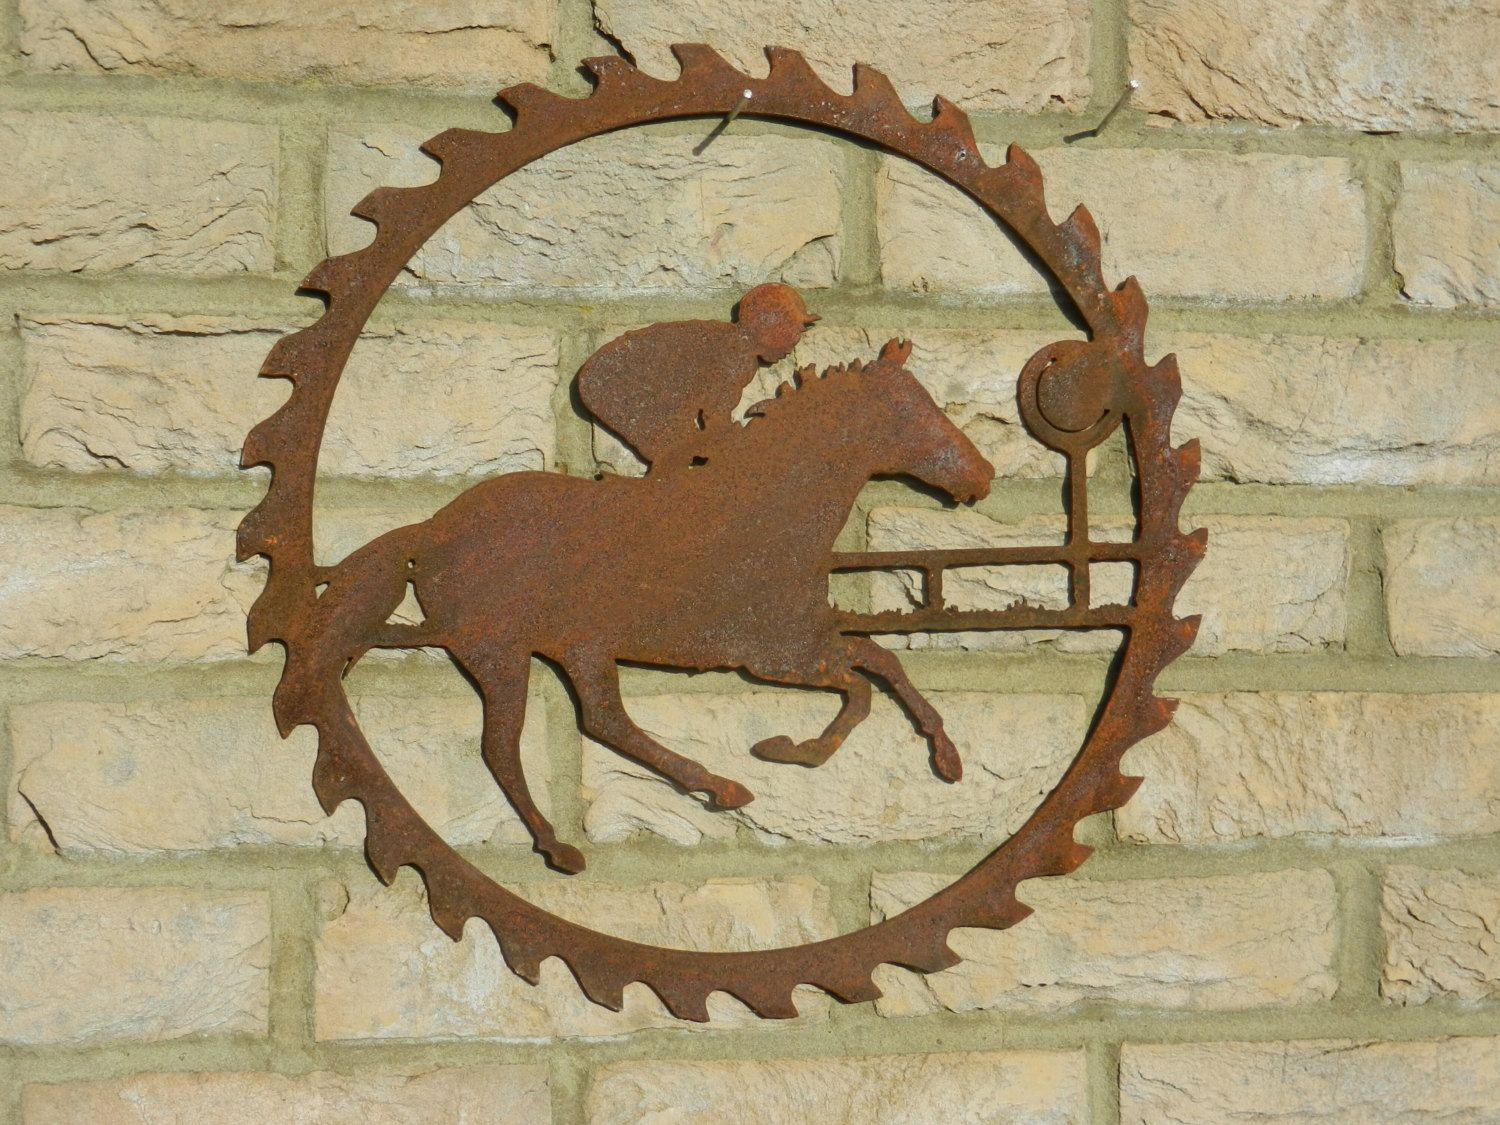 Horse Racing Circular Saw Blade Art / Rusty Metal Art / Garden Decor / Horse  Racing Gift / Horse Rider / Horse Wall Hanging / Flat Racing